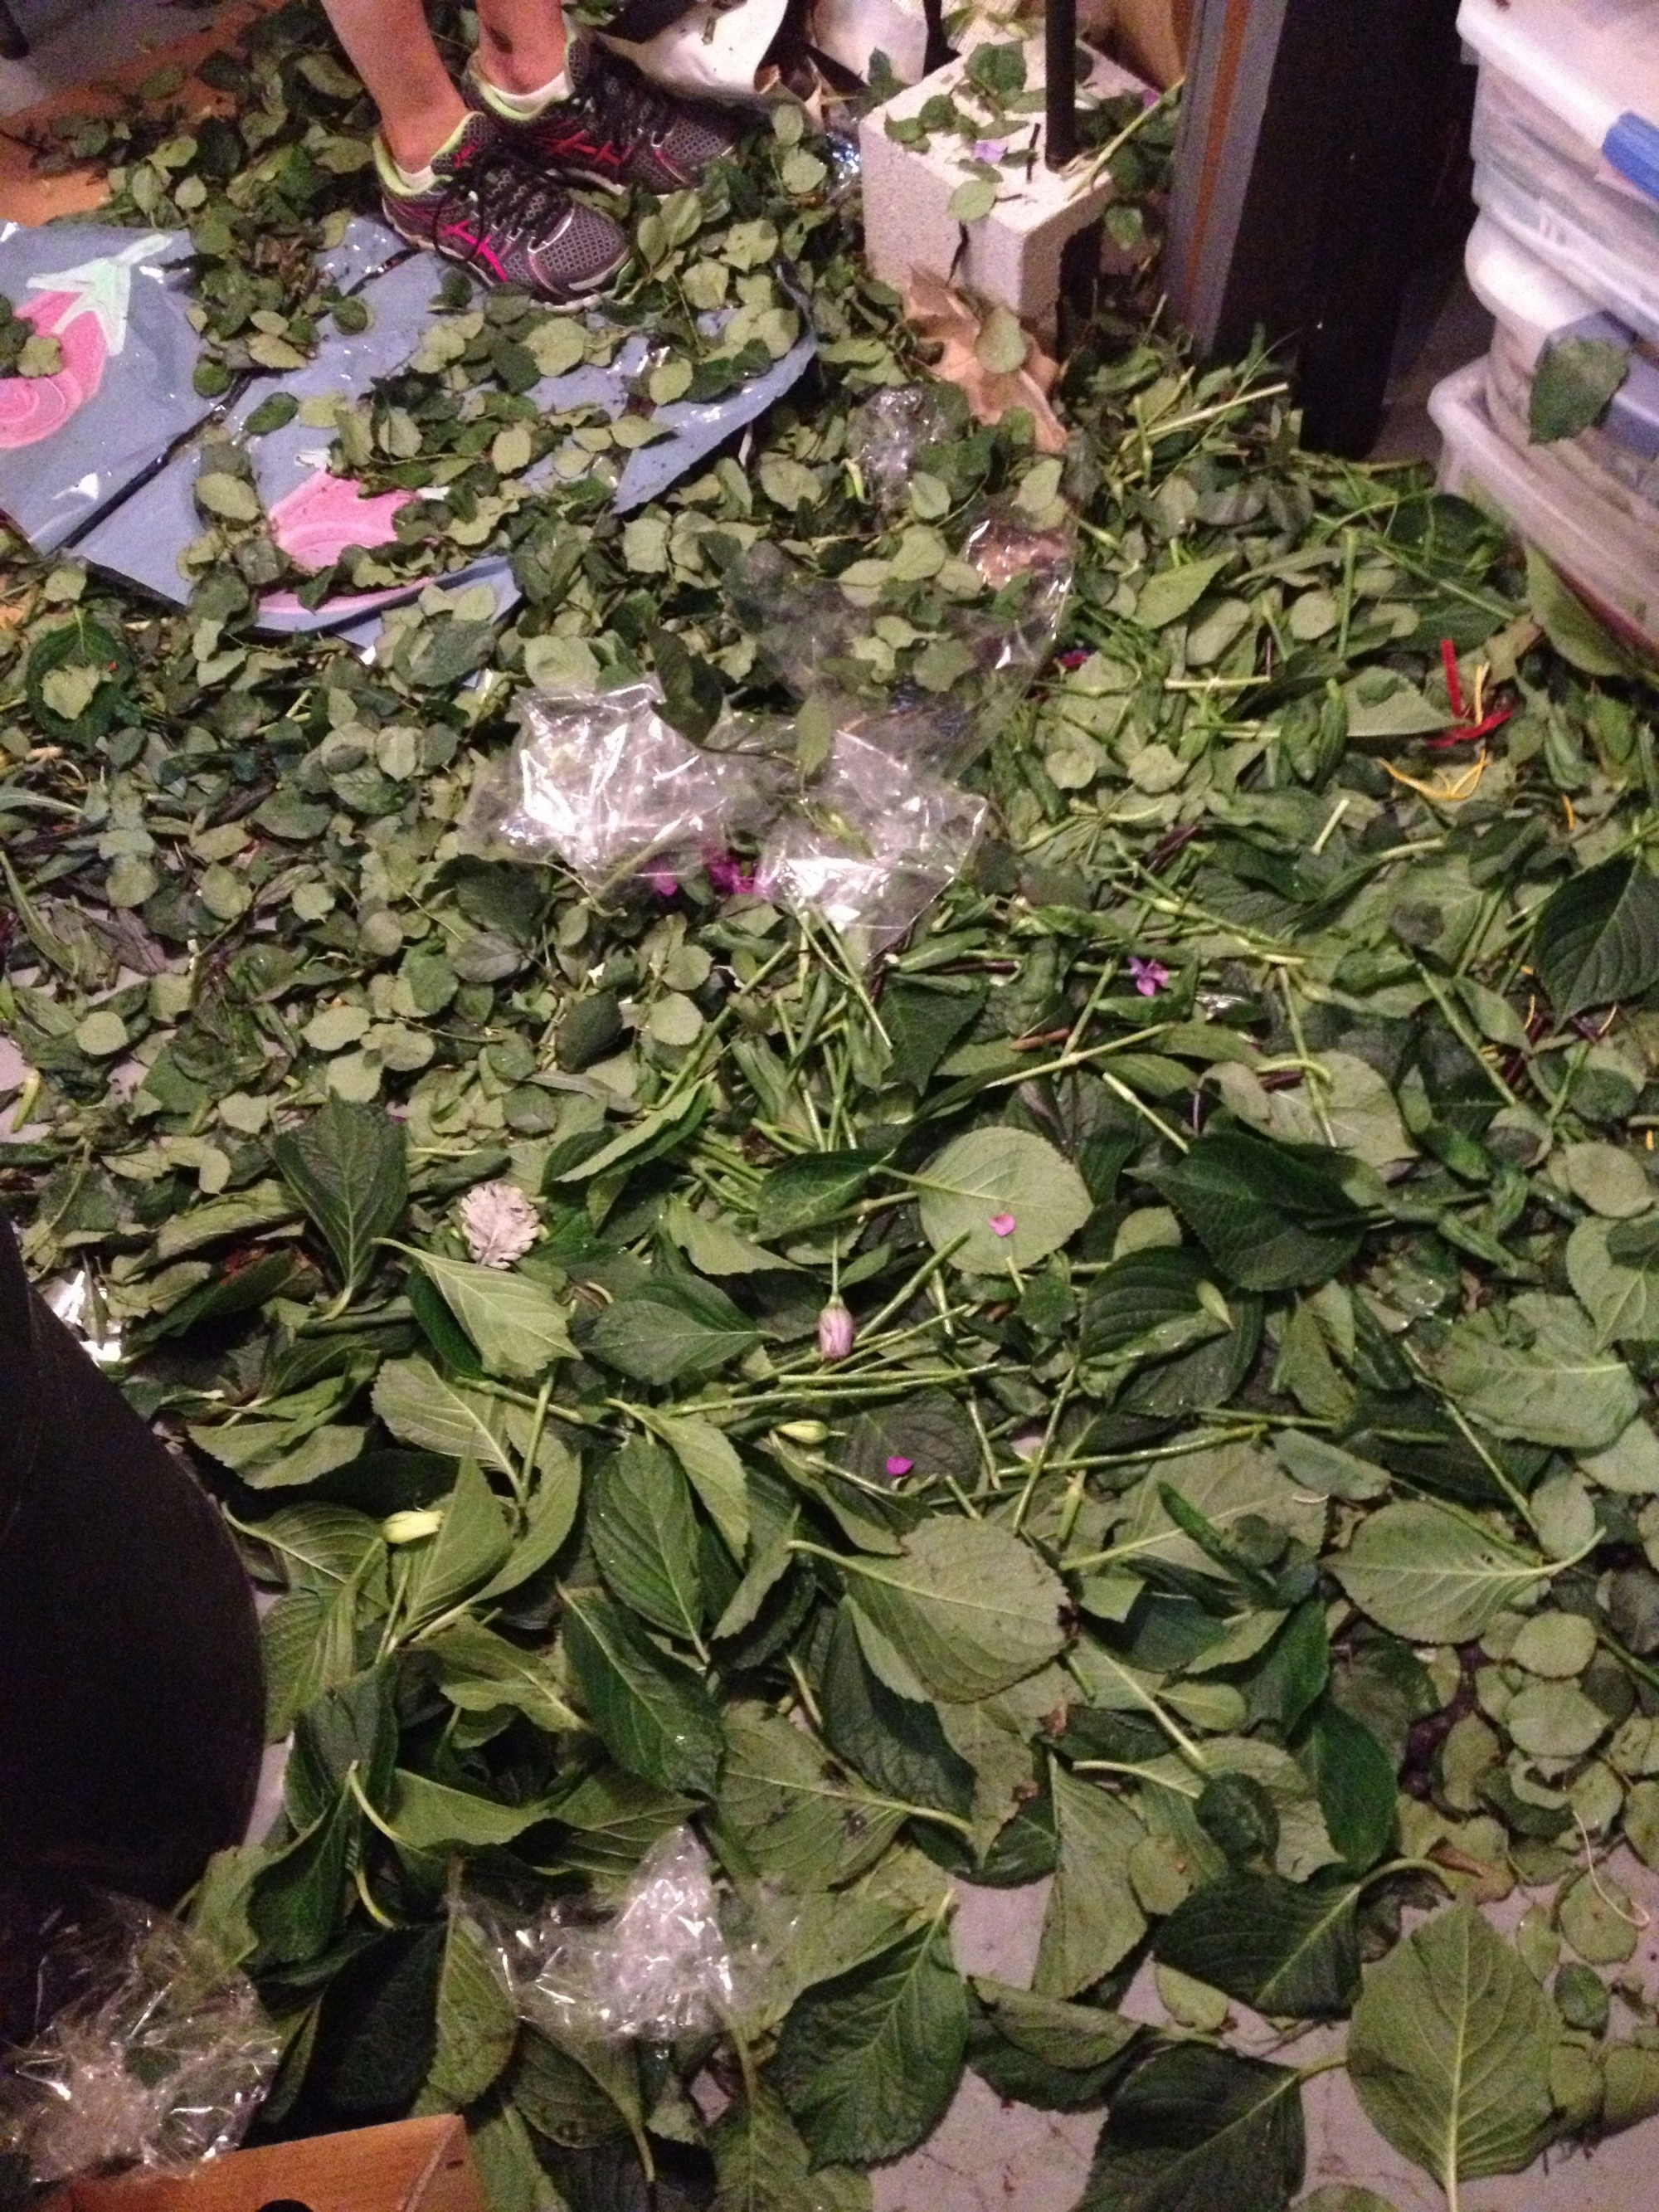 Processing flowers is a dirty job. All the leaves and thorns have to be stripped and the ends of the stems chopped. This left us in a sea of green!